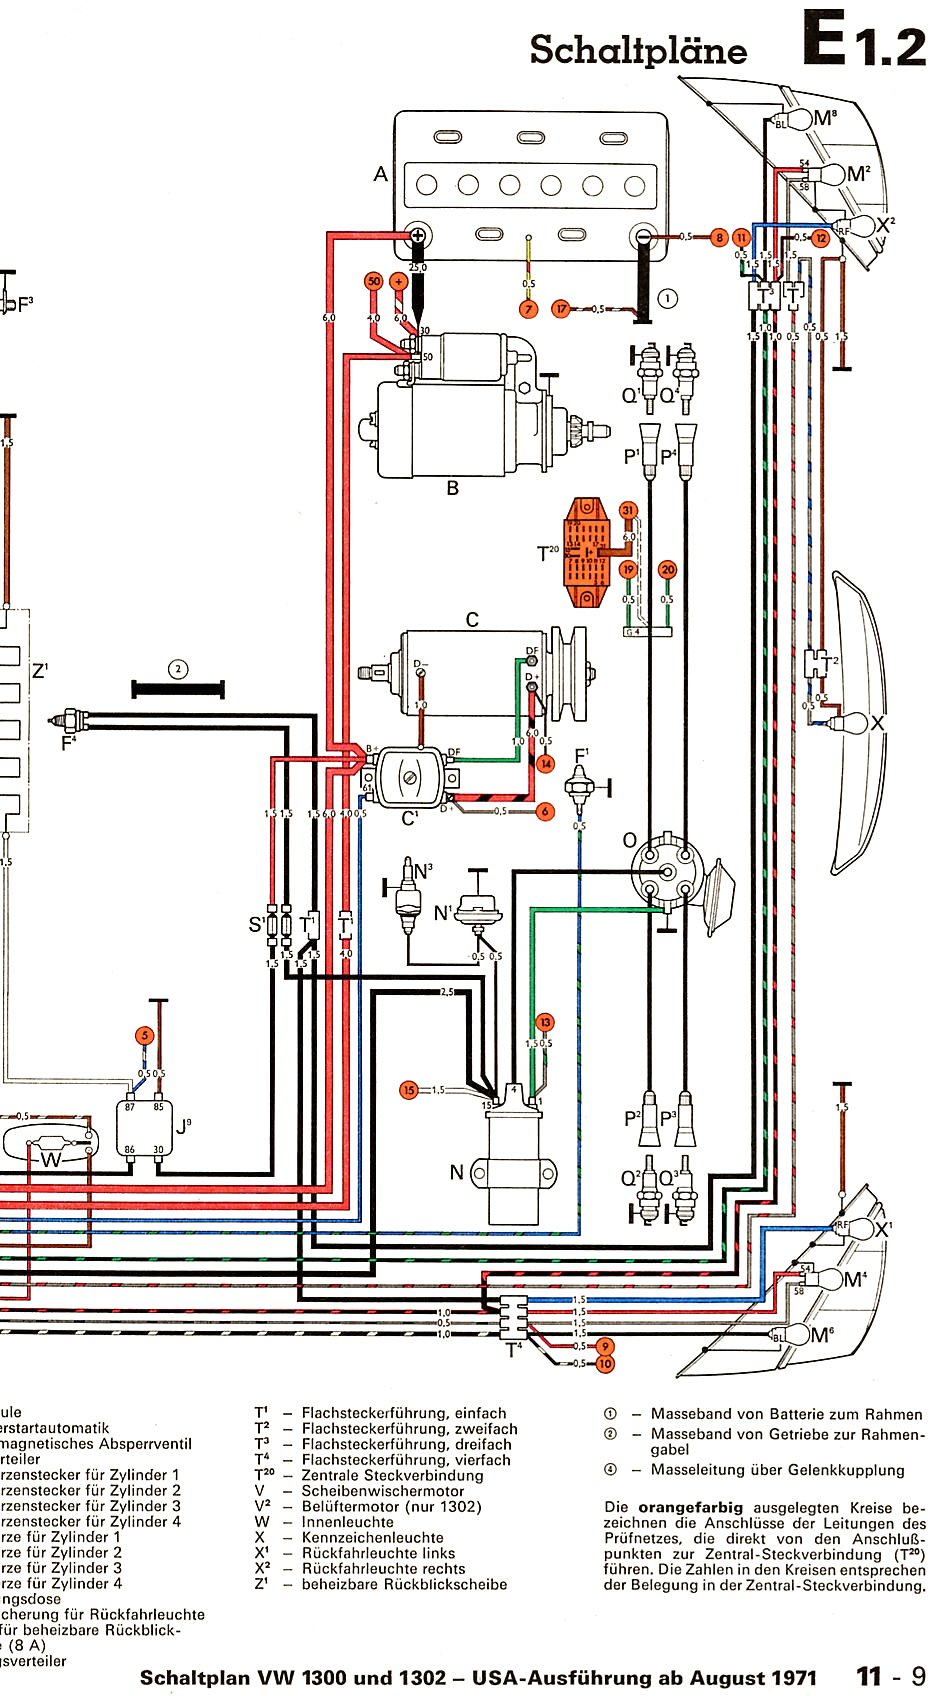 1300_and_1302_USA_from_August_1971 2 73 super beetle voltage regulator shoptalkforums com 1973 Super Beetle Wiring Diagram at crackthecode.co